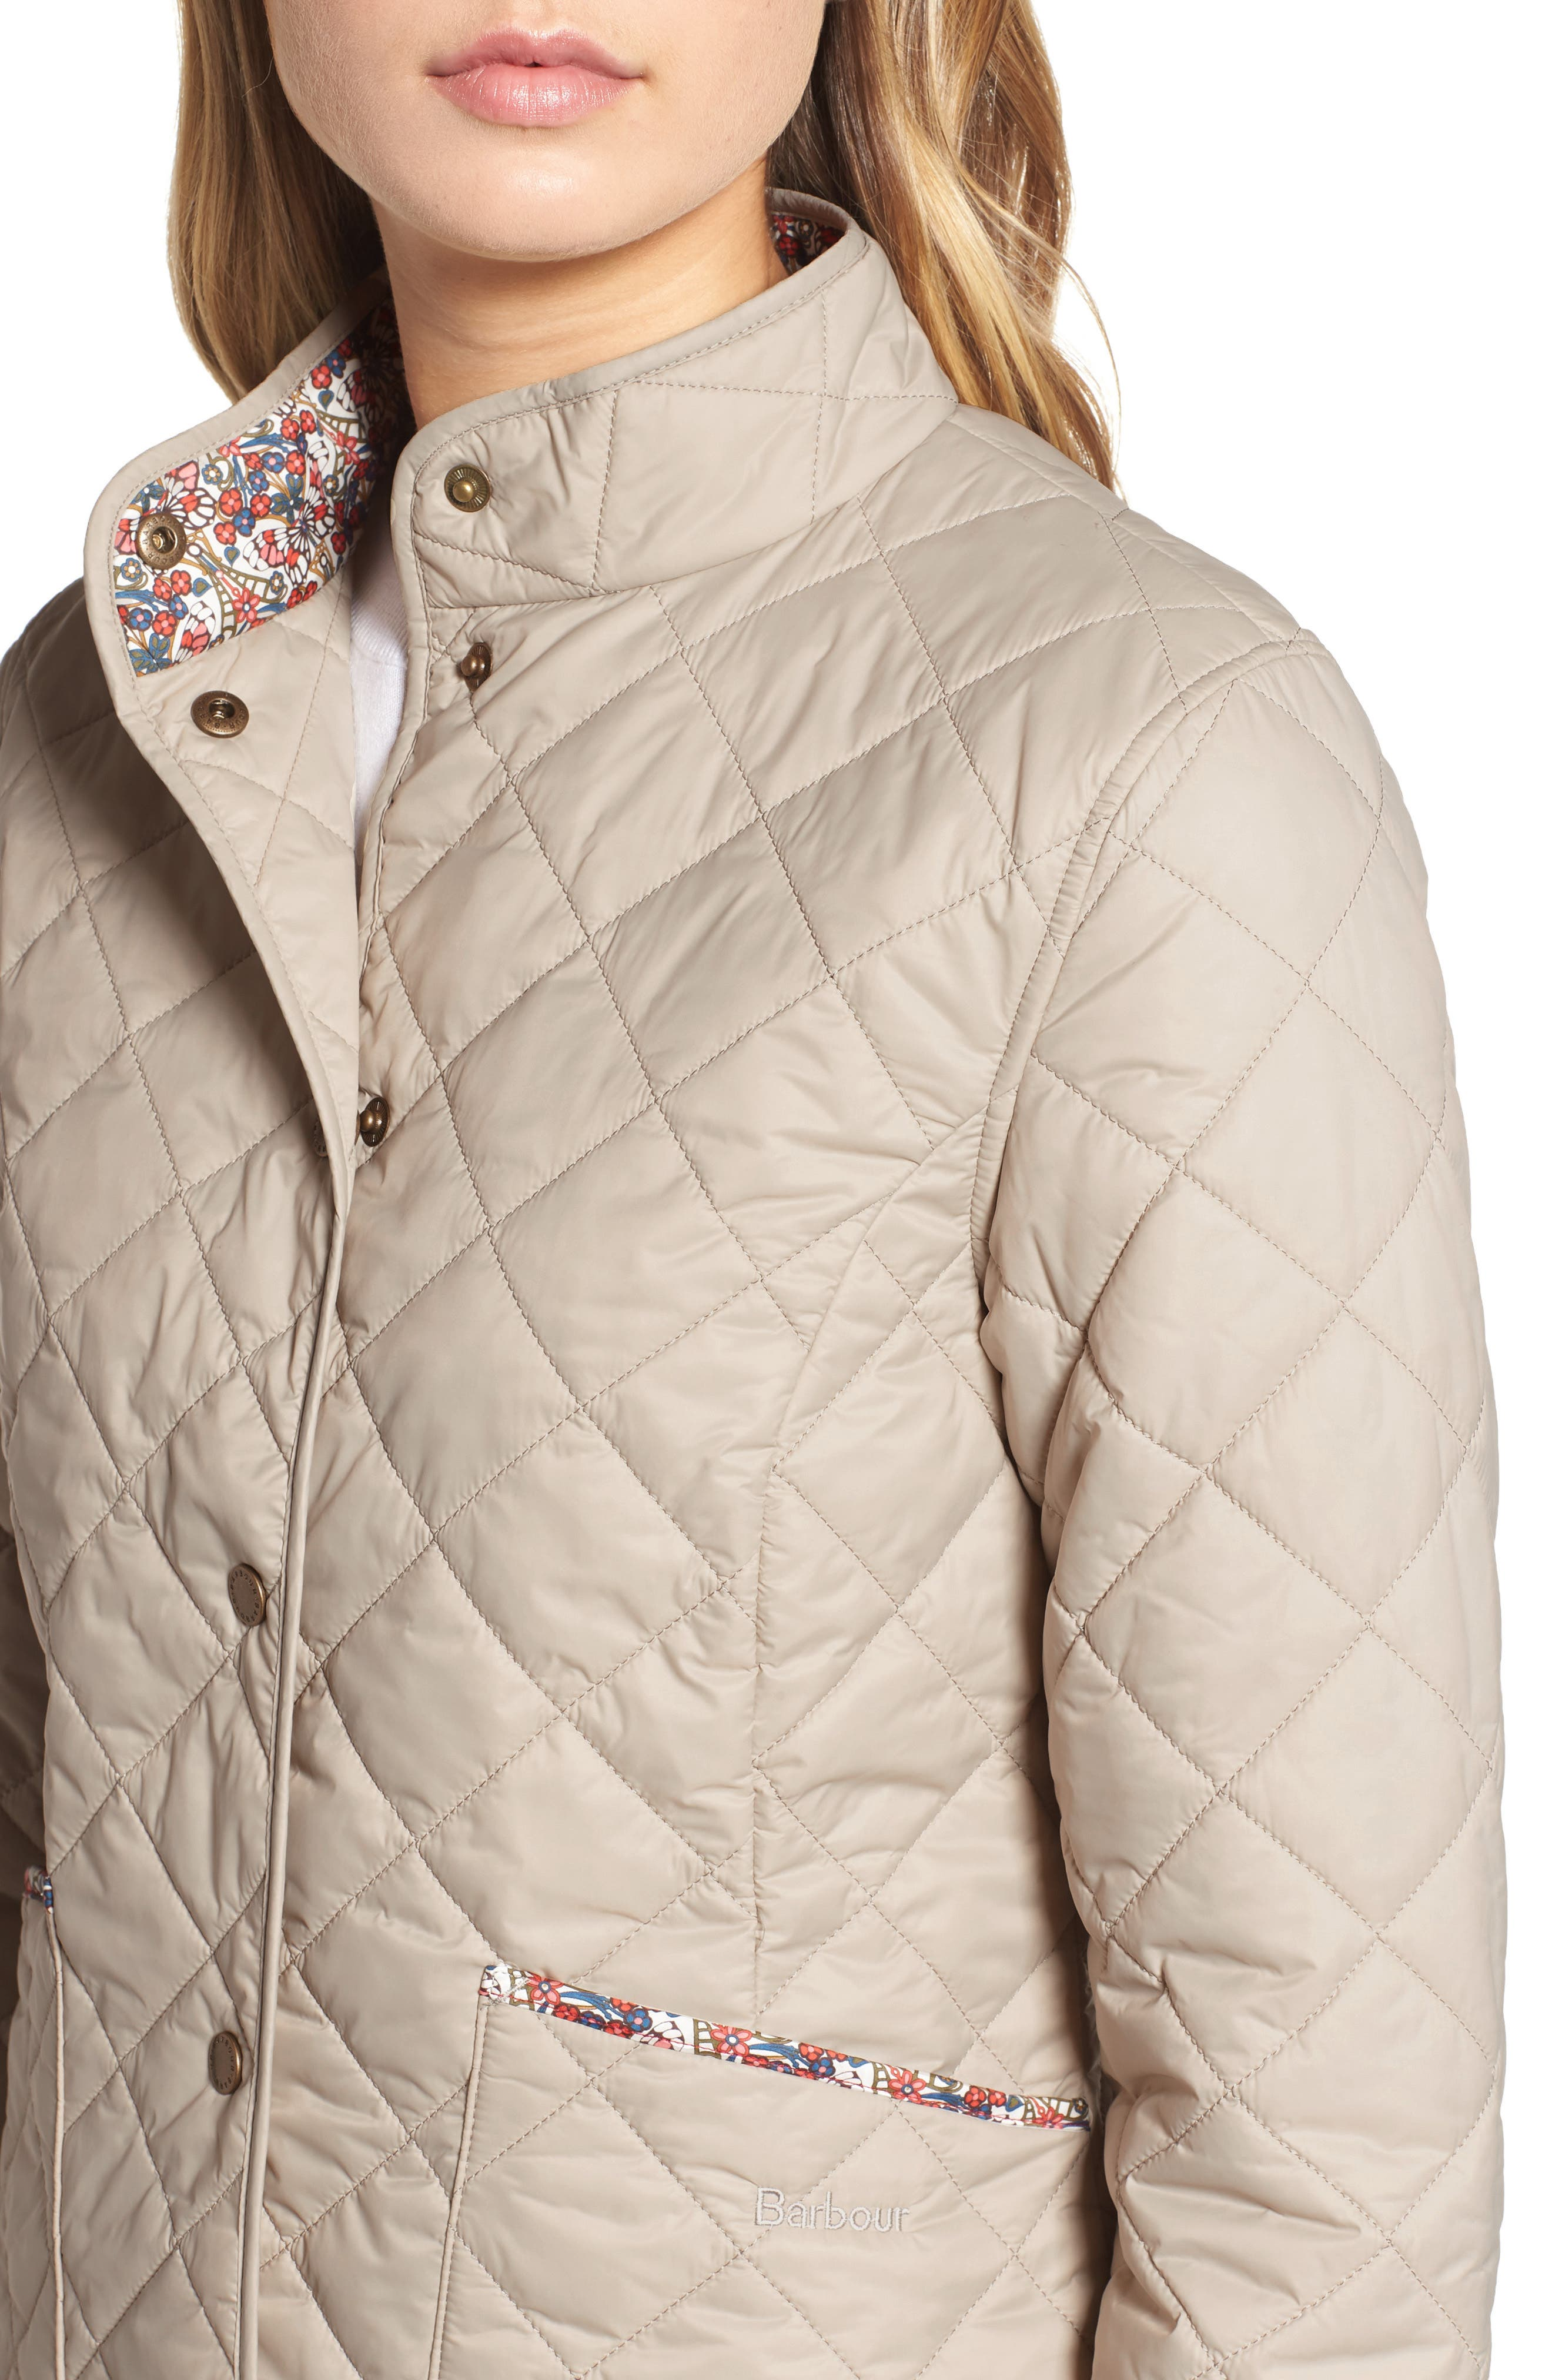 BARBOUR,                             x Liberty Evelyn Quilted Jacket,                             Alternate thumbnail 5, color,                             MIST/ MORRIS BUTTERFLY